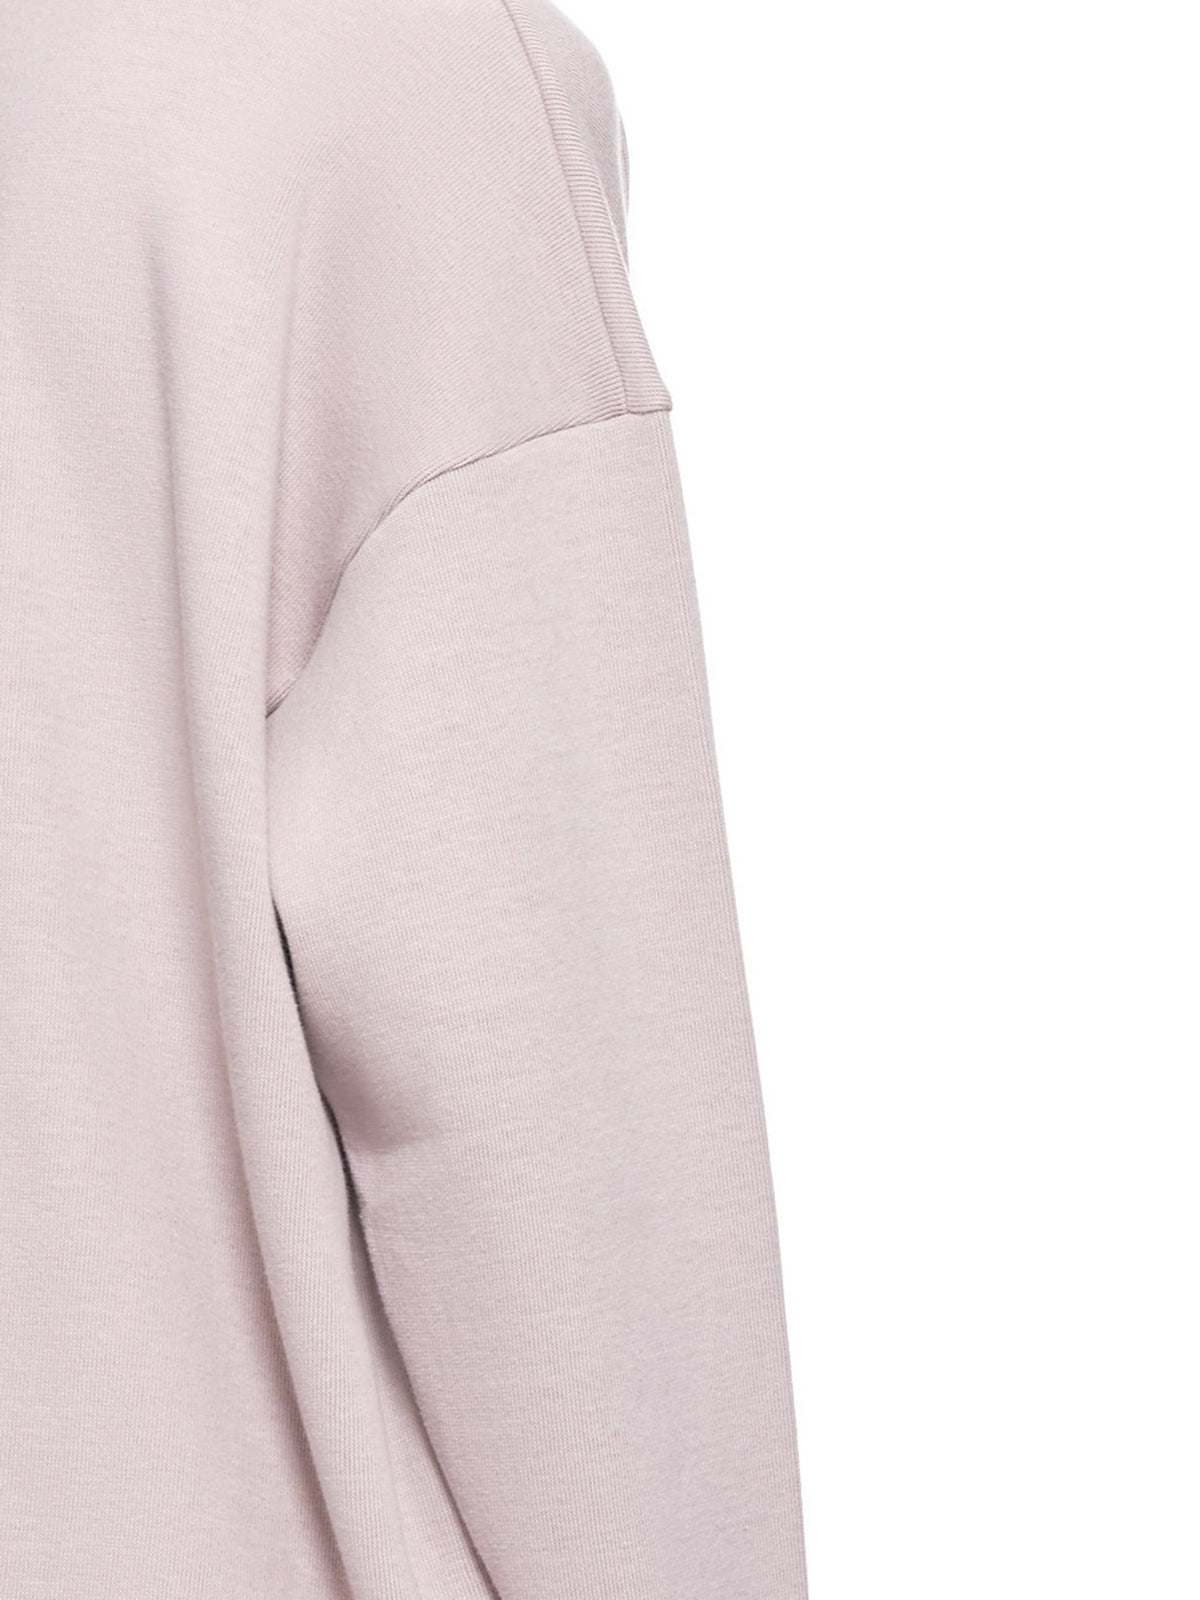 Cowl Turtleneck Sweater (KJ03-033-PINK)